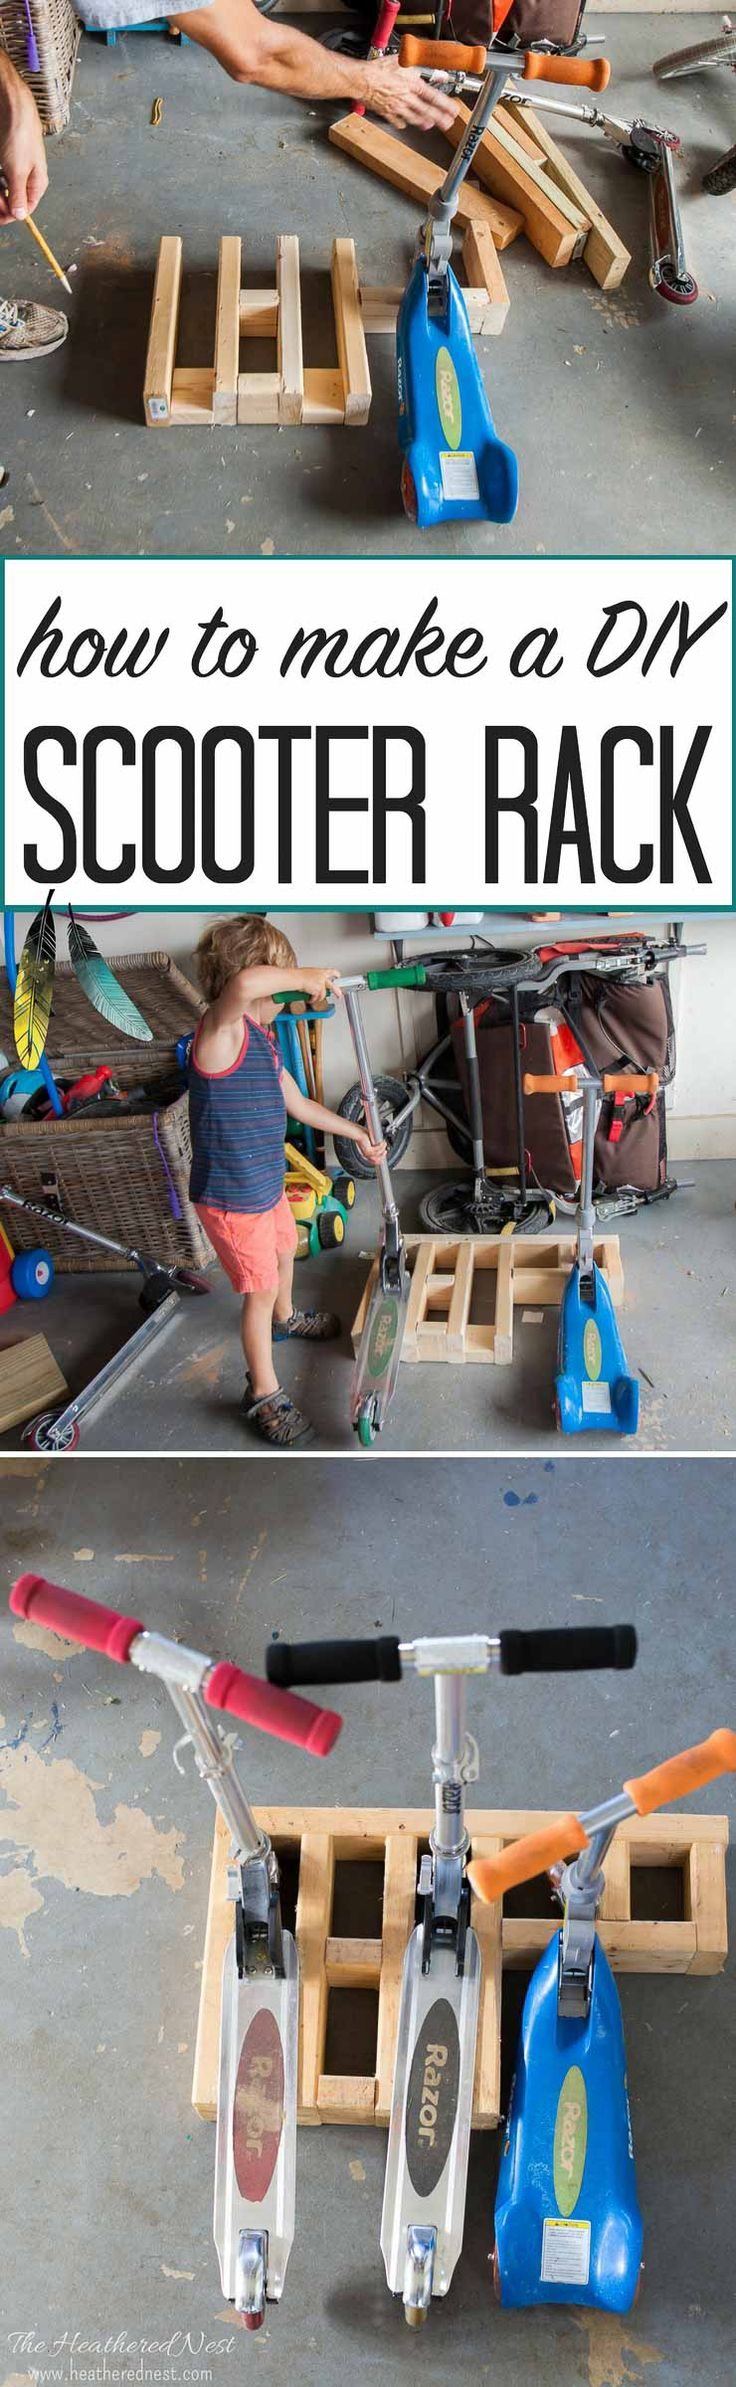 how to build an easy DIY scooter stand to store and organize the kids ride-on toys! via @heathernest